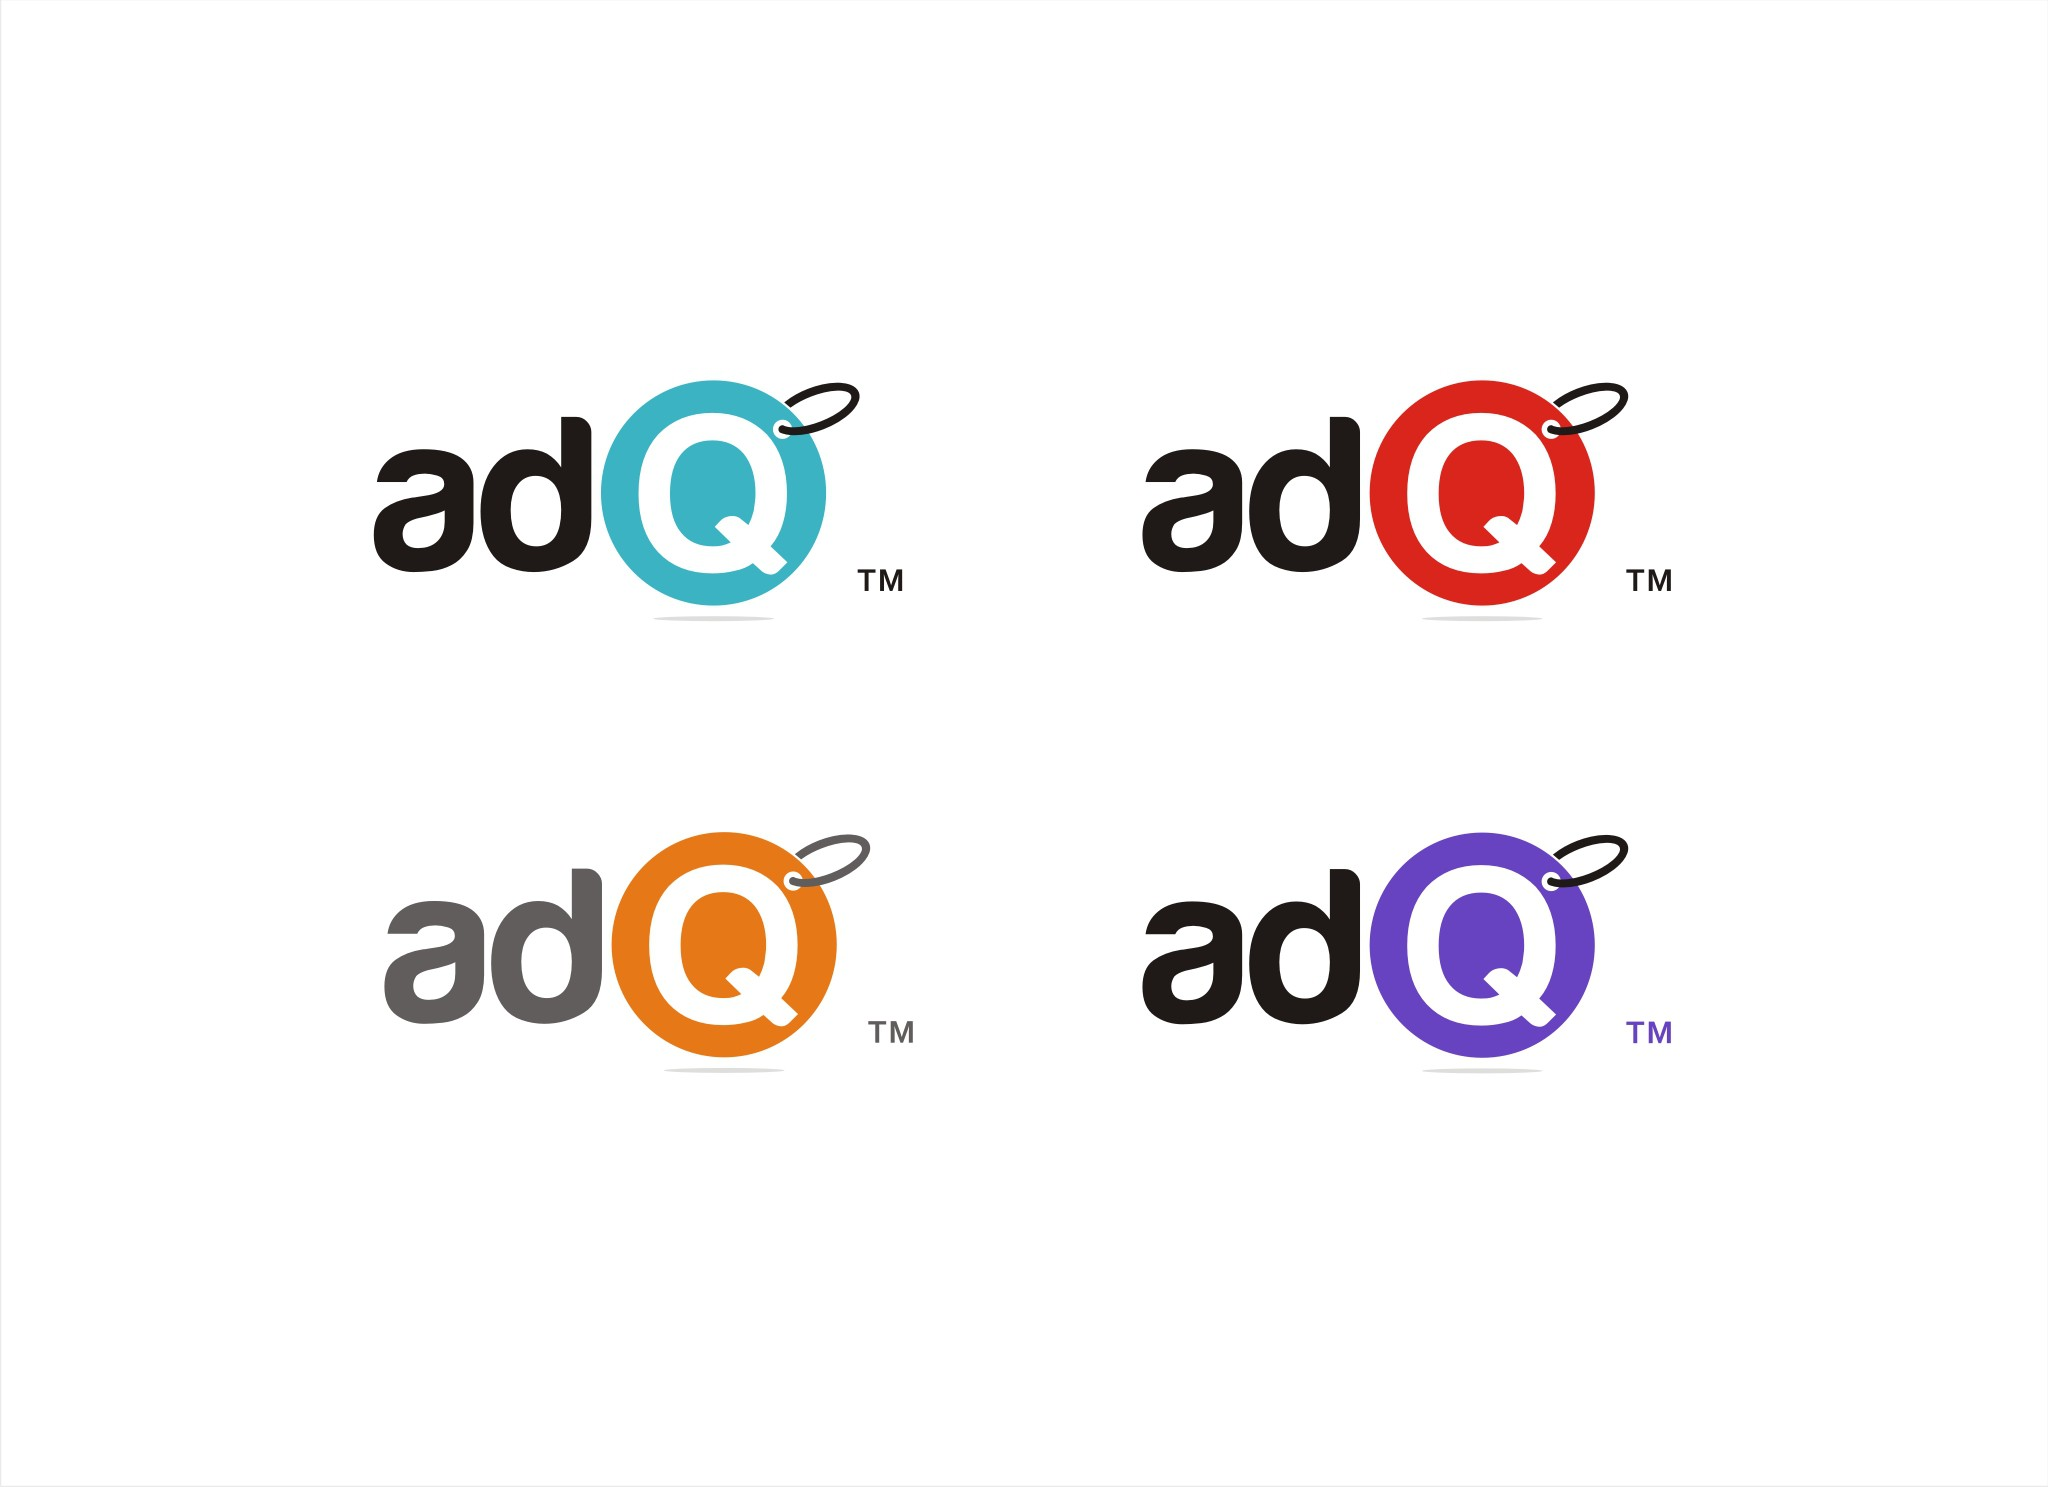 Create a logo for digital advertising analytics company AdQ